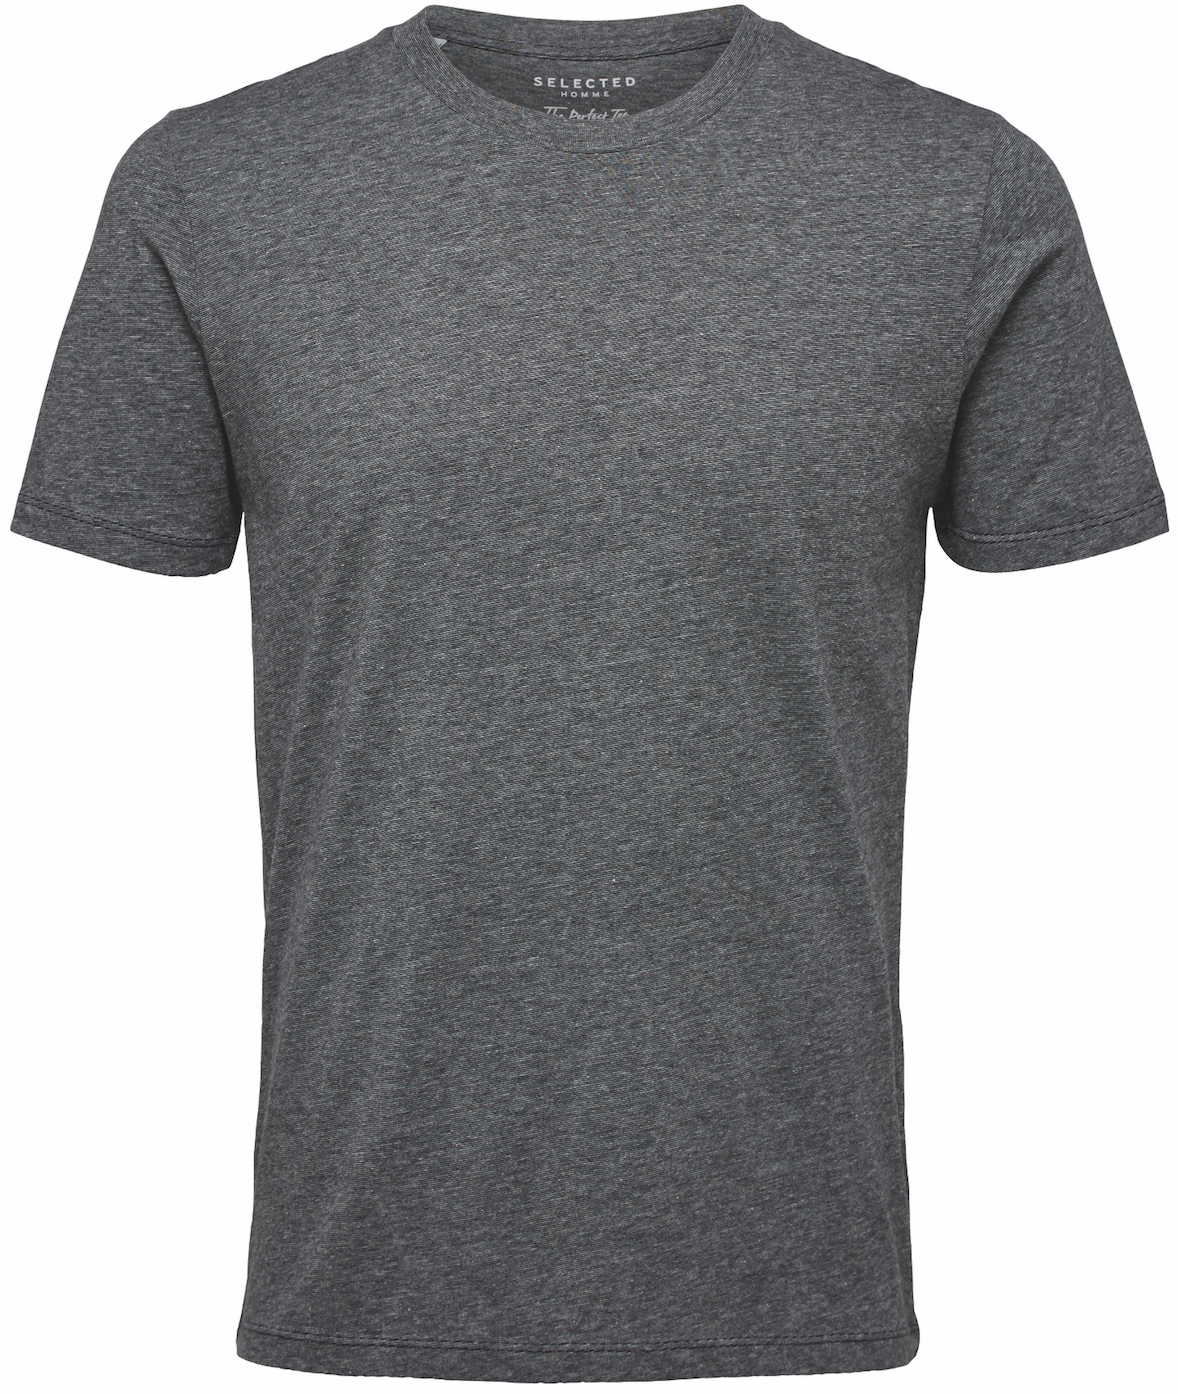 Selected Black / Grey The Perfect Short Sleeve T-shirt